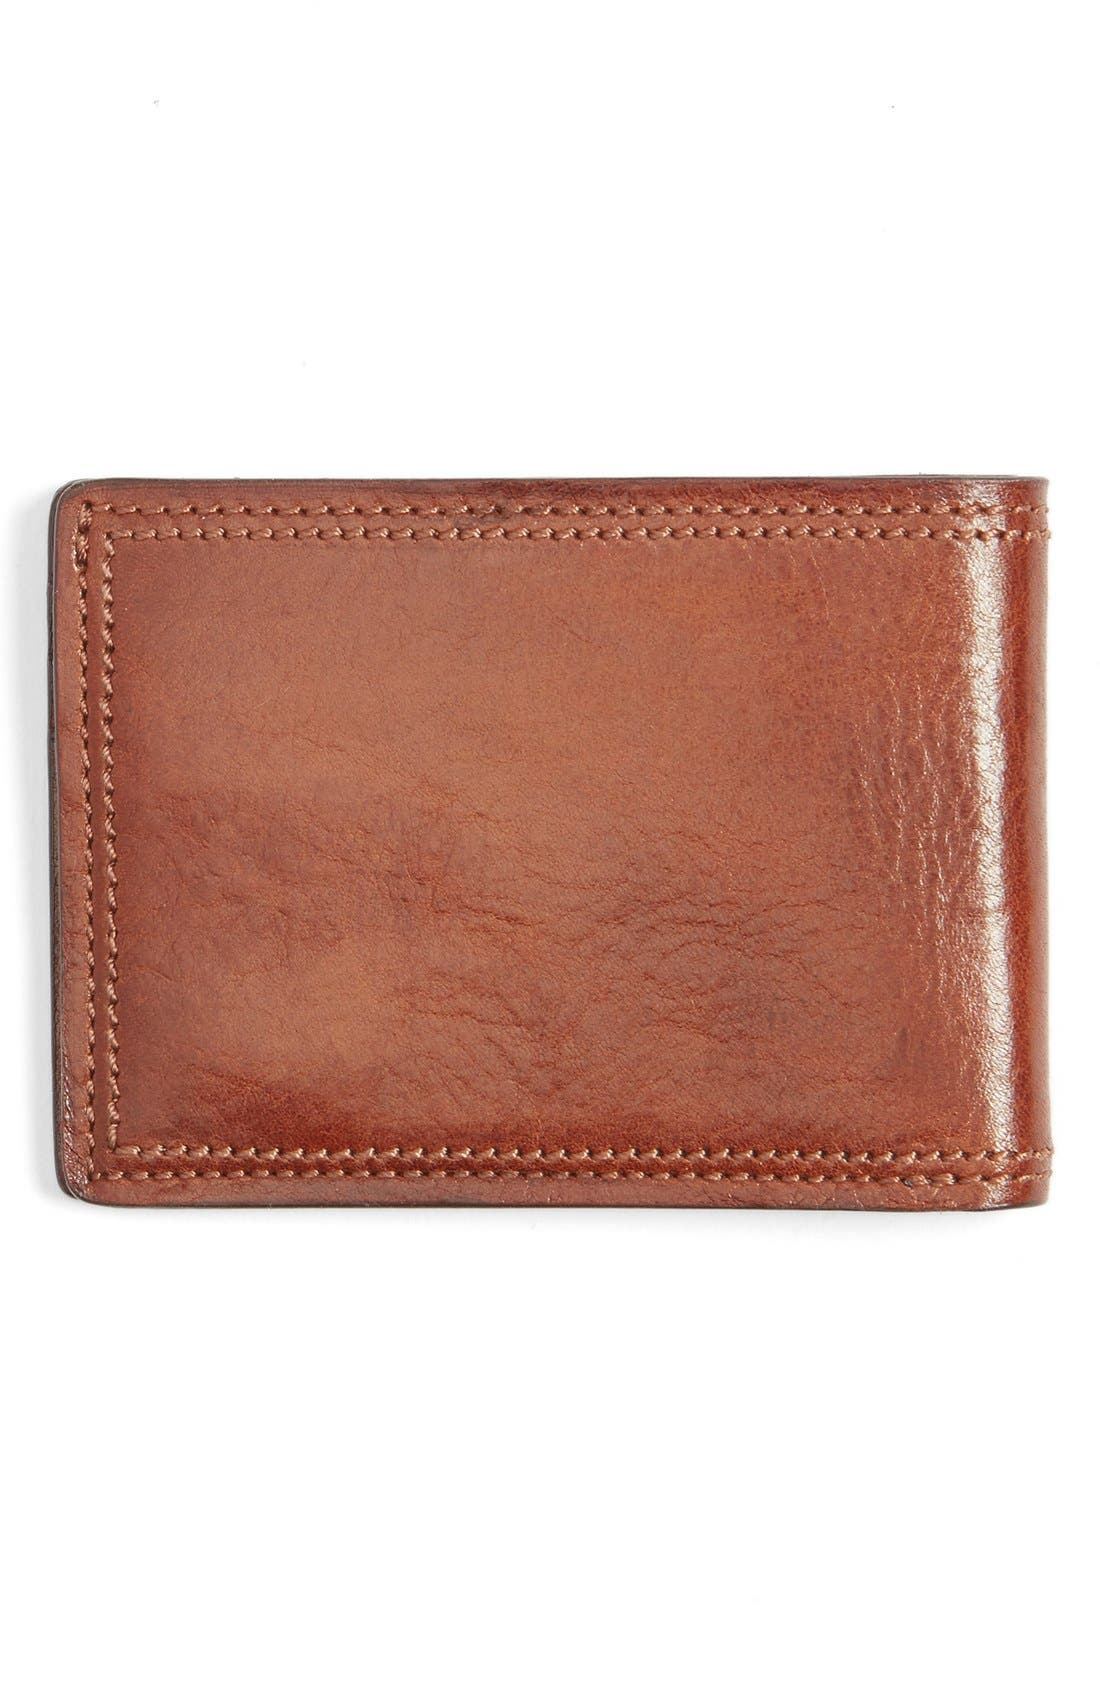 Leather Bifold Wallet,                             Alternate thumbnail 3, color,                             Amber